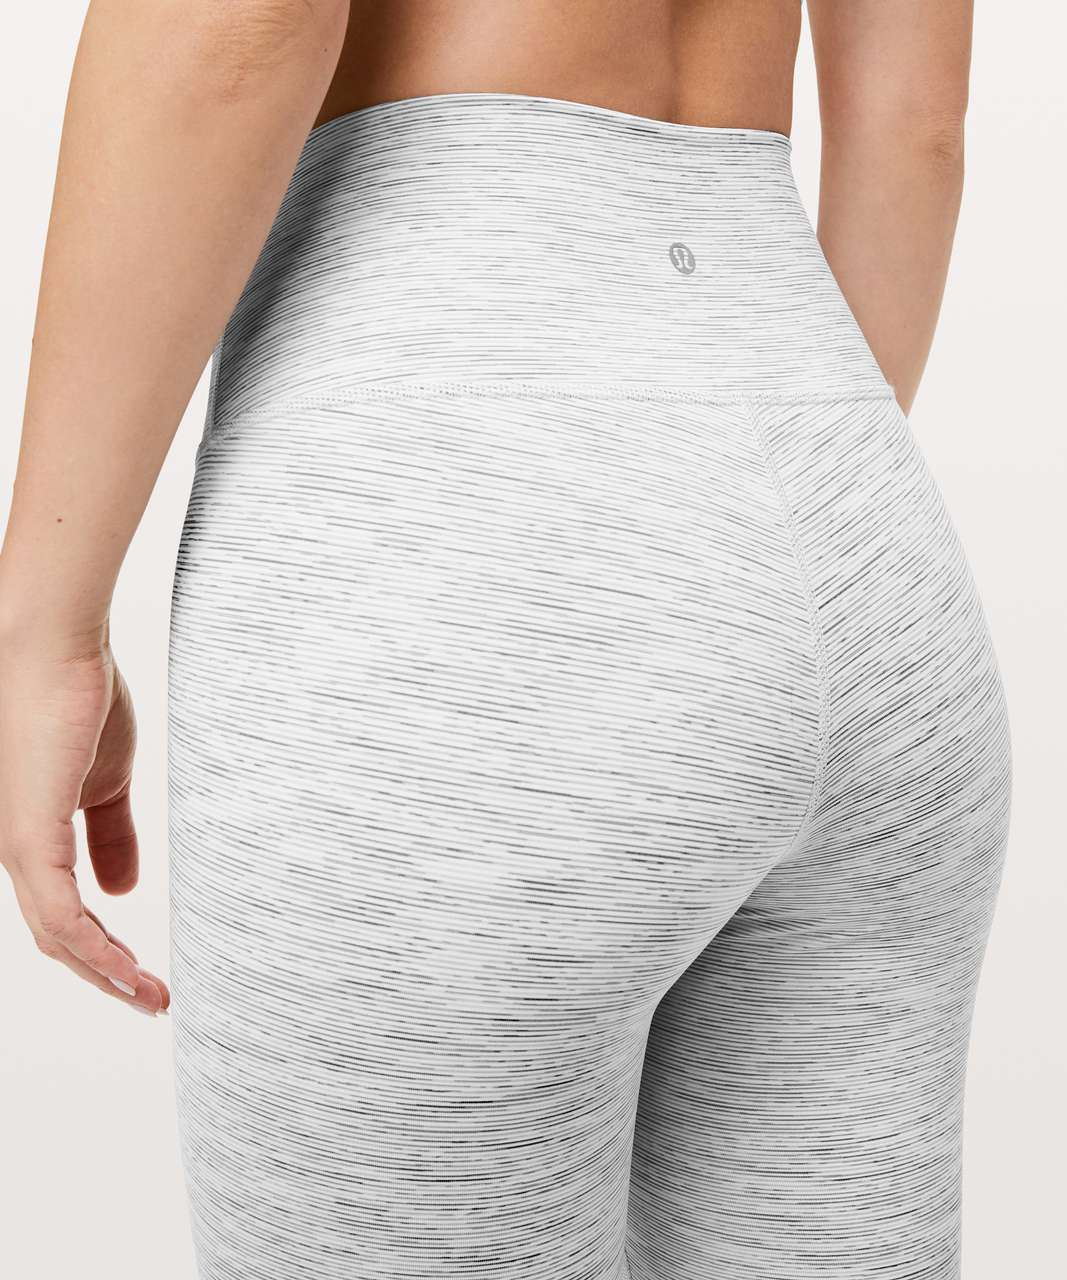 """Lululemon Wunder Under High-Rise 7/8 Tight *Luxtreme 25"""" - Wee Are From Space Nimbus Battleship (First Release)"""